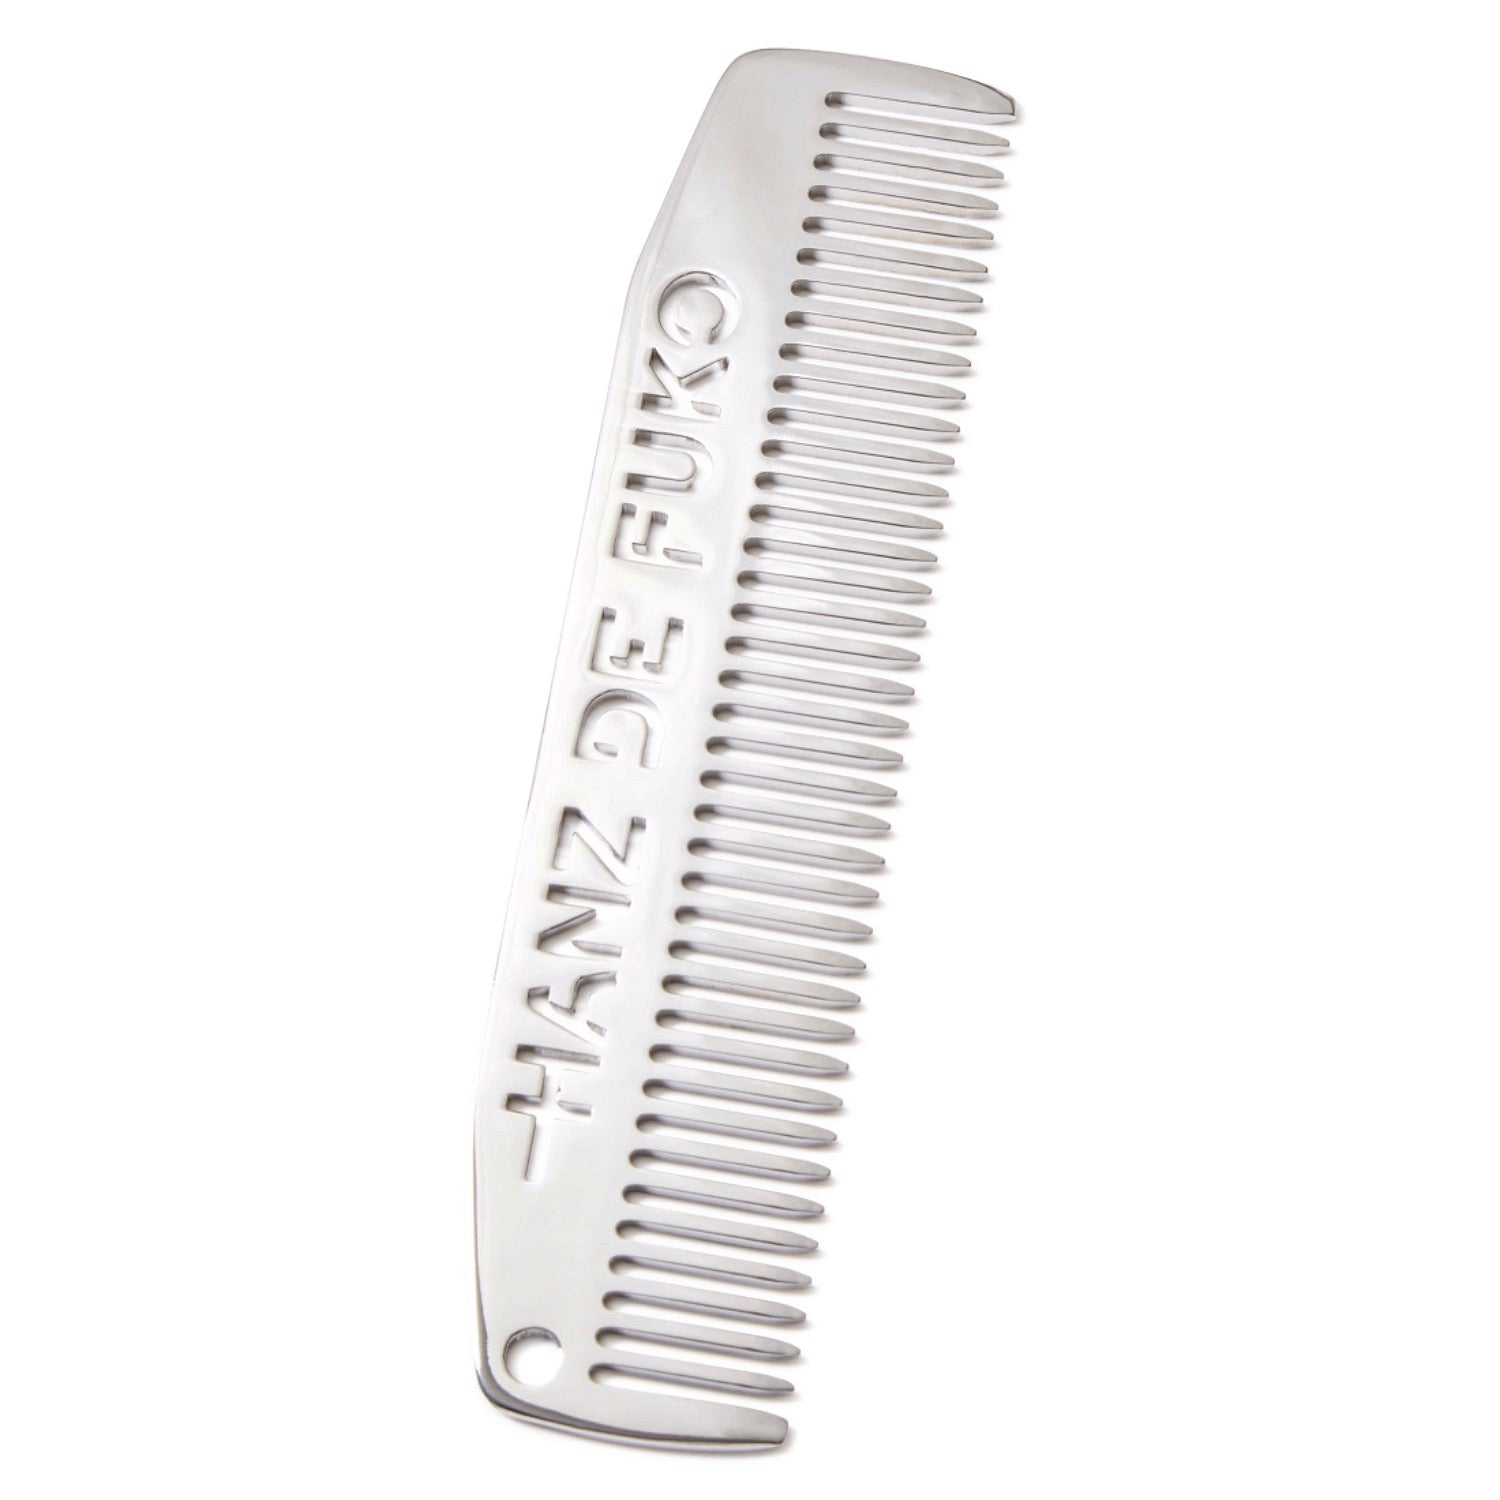 CHROME STEEL COMB